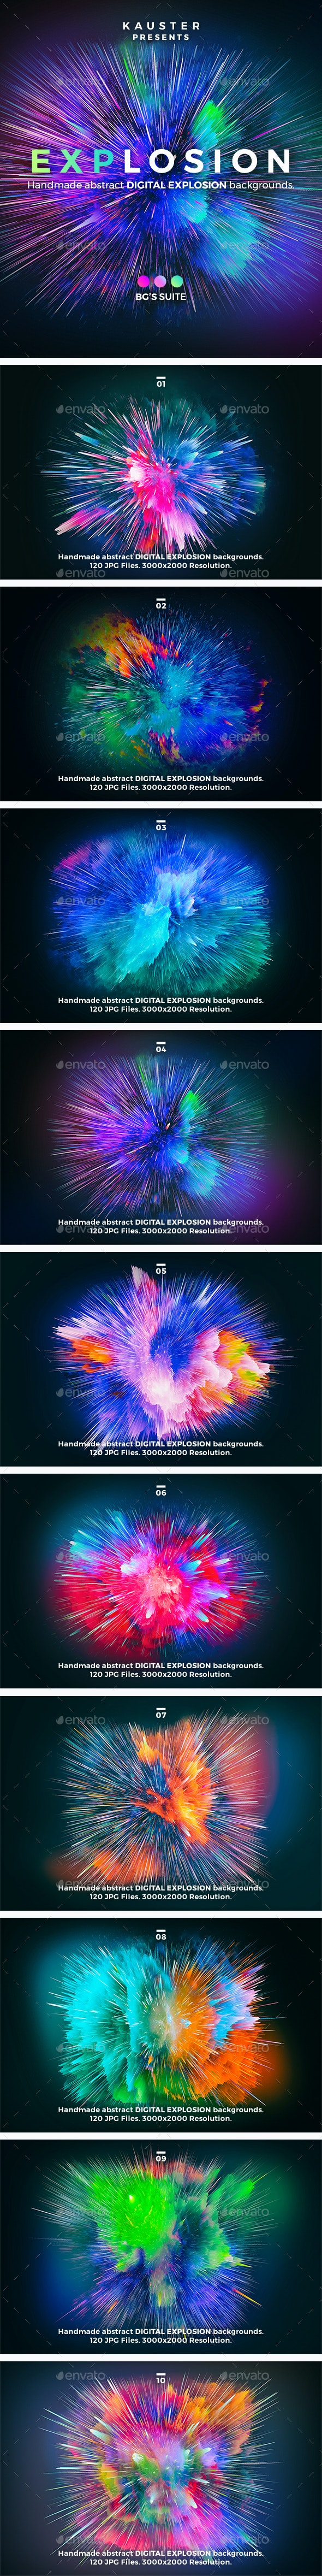 Digital Explosion Backgrounds - Abstract Backgrounds